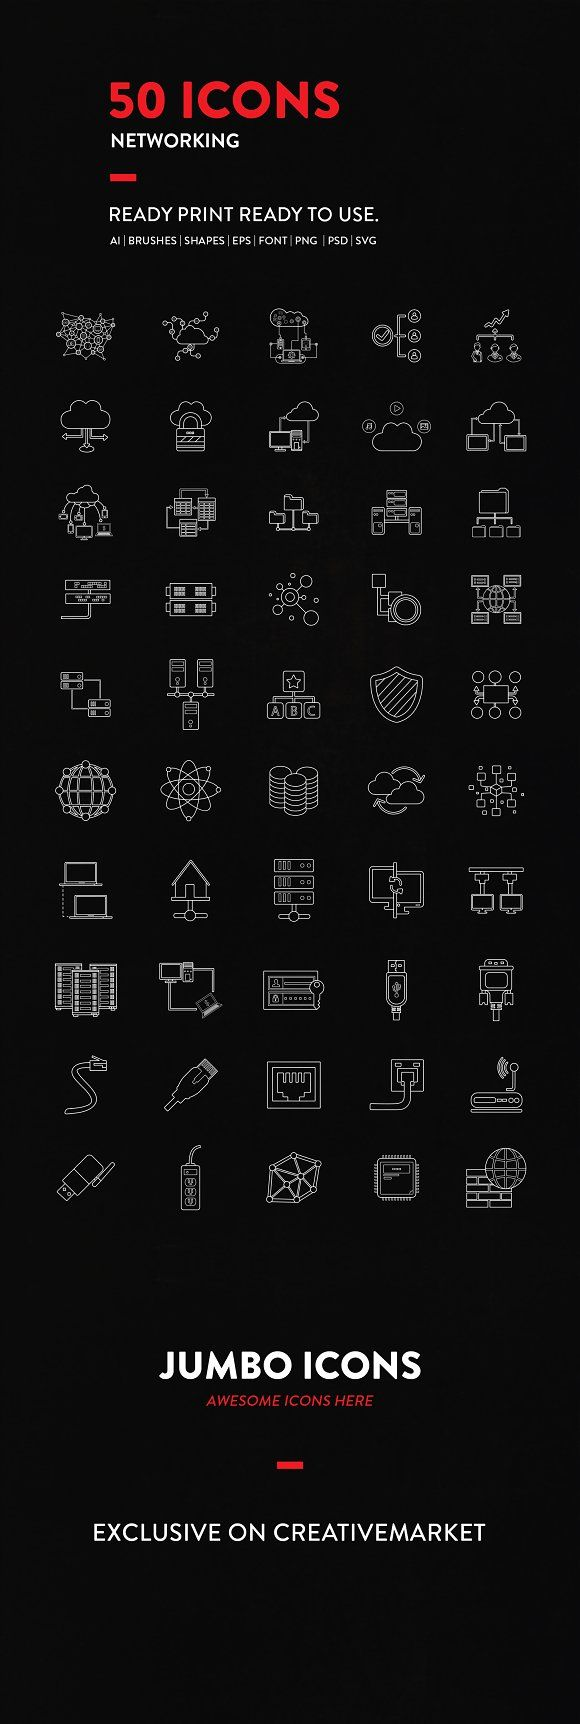 50 NETWORKING ICONS PACK only $9  DOWNLOAD Now    What will you get? -AI file properly organized in layers and groups -EPS file to use in all vector editing softwares -Adobe Photoshop PSD grouped file -Isolated PNG files in 5 sizes (32px, 64px, 128px, 256px,  512px) -Isolated SVG files  #besticons #netwrokingicons #lineart #vectorart #eps #psd #png #photoshop #svg #graphicdesigners #creativedesigners #developers #IT #adobe #userinterface